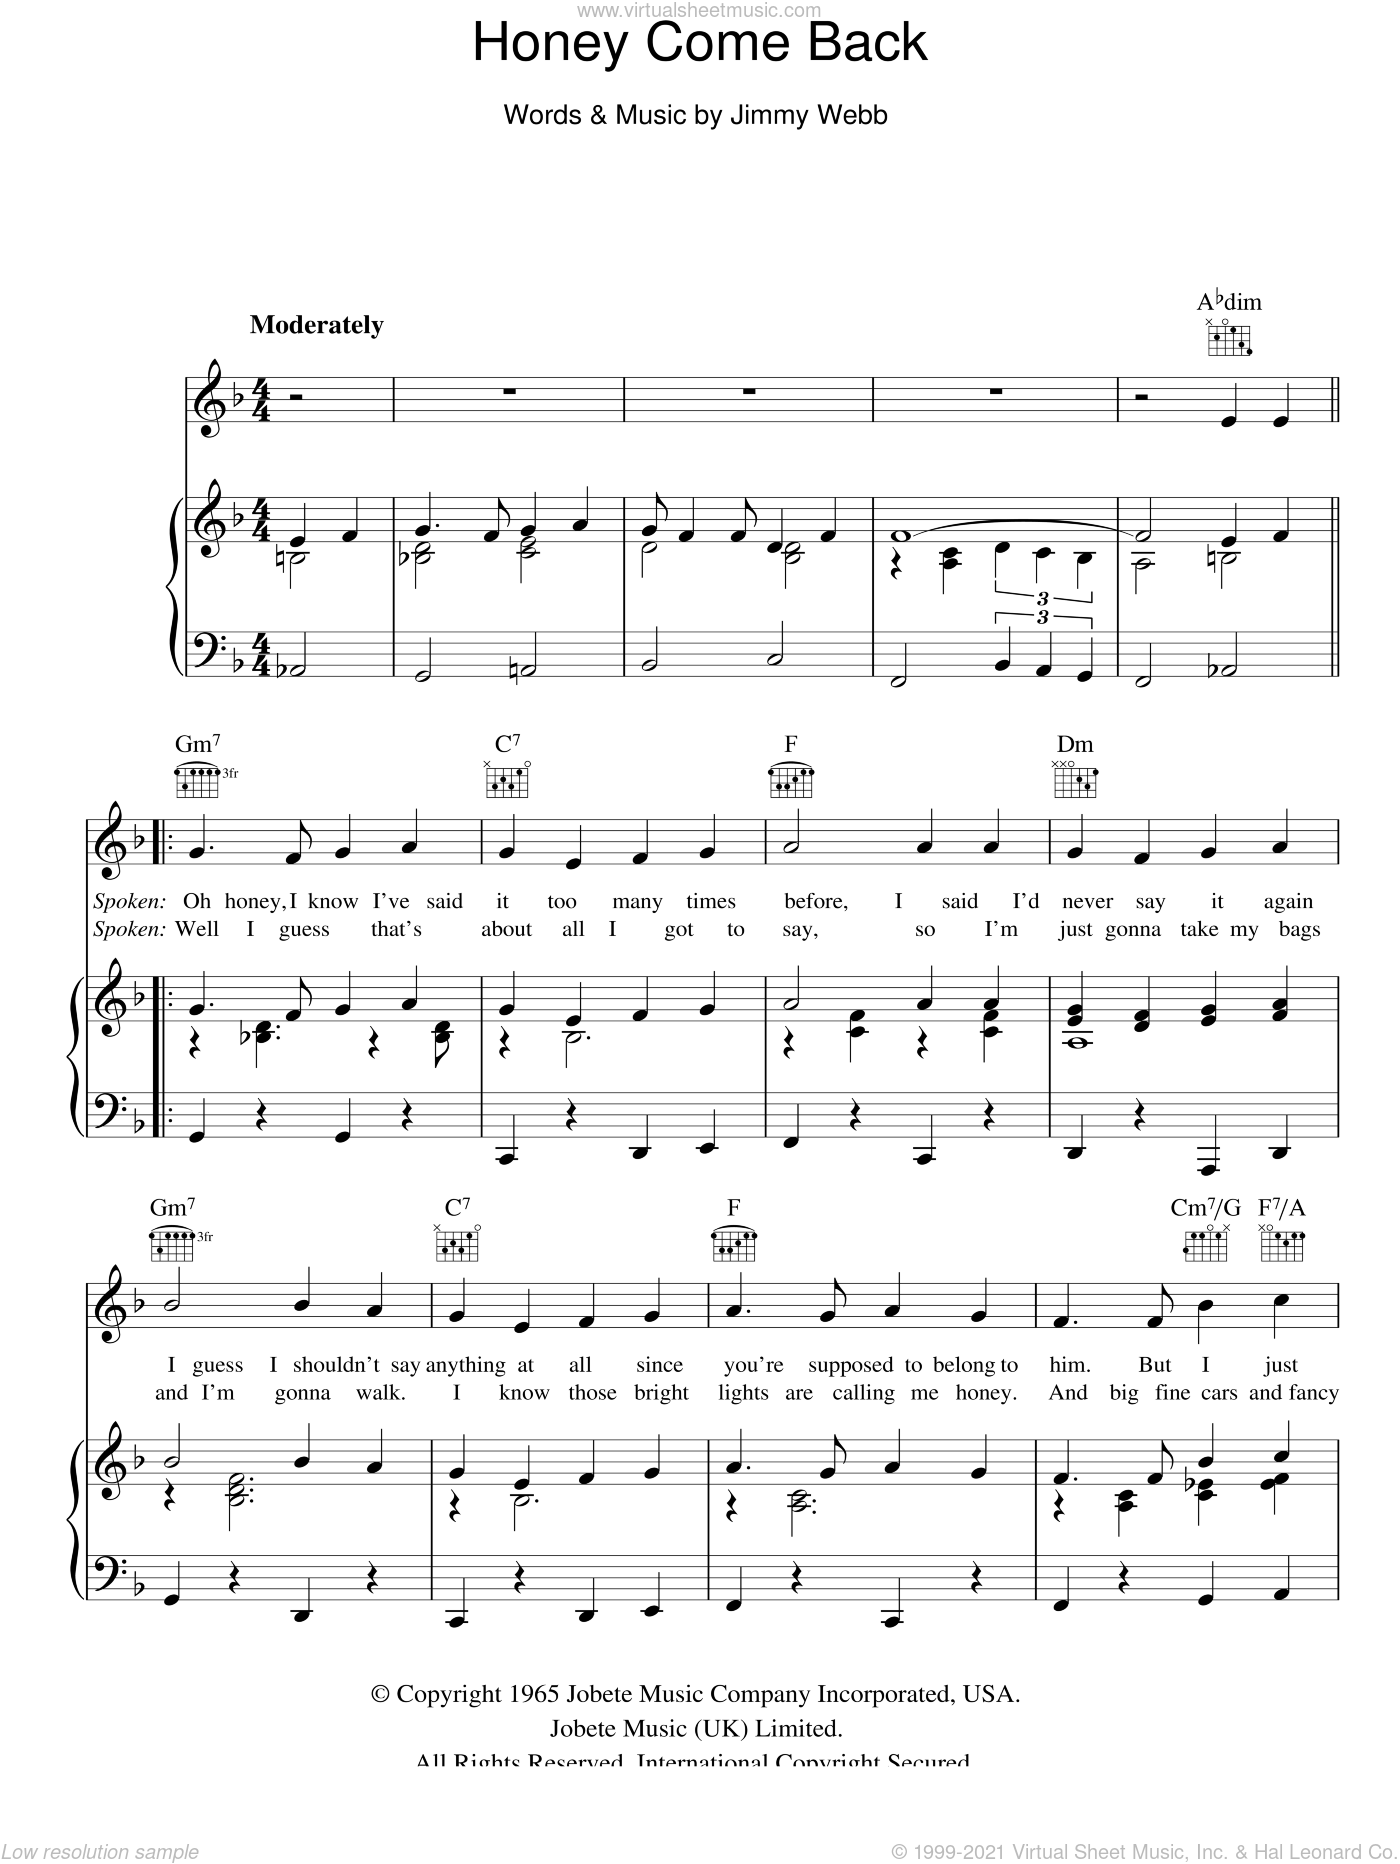 Honey Come Back sheet music for voice, piano or guitar by Jimmy Webb